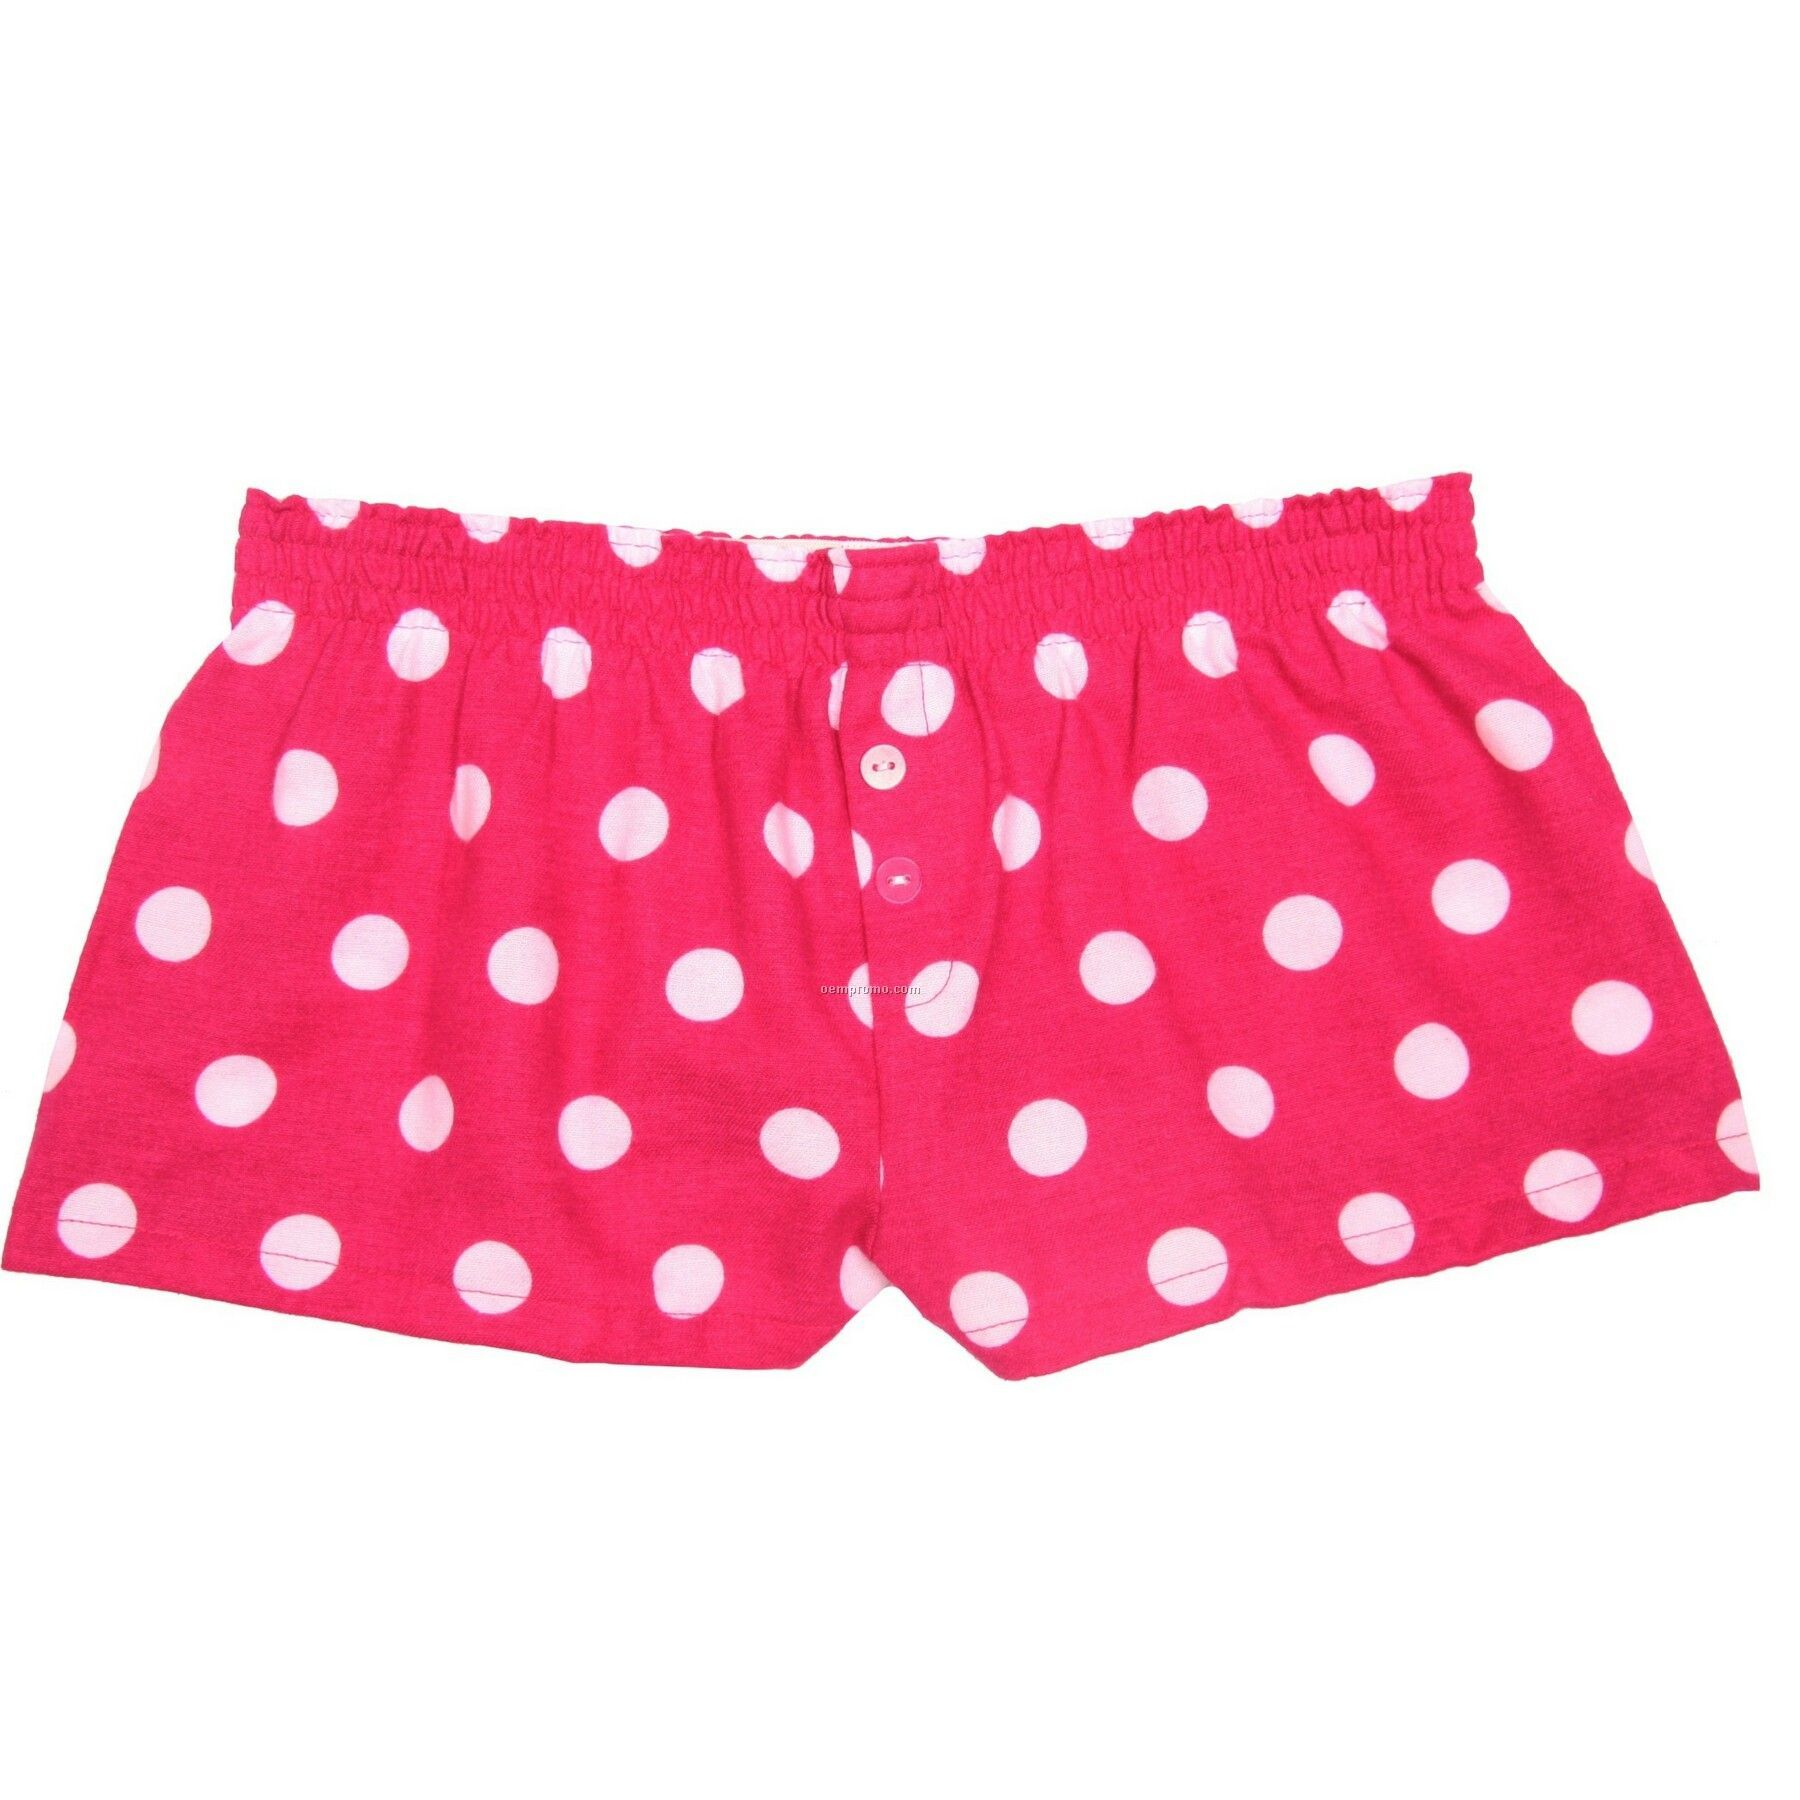 Youth Hot Spot Fuchsia Pink Flannel Bitty Boxer Short